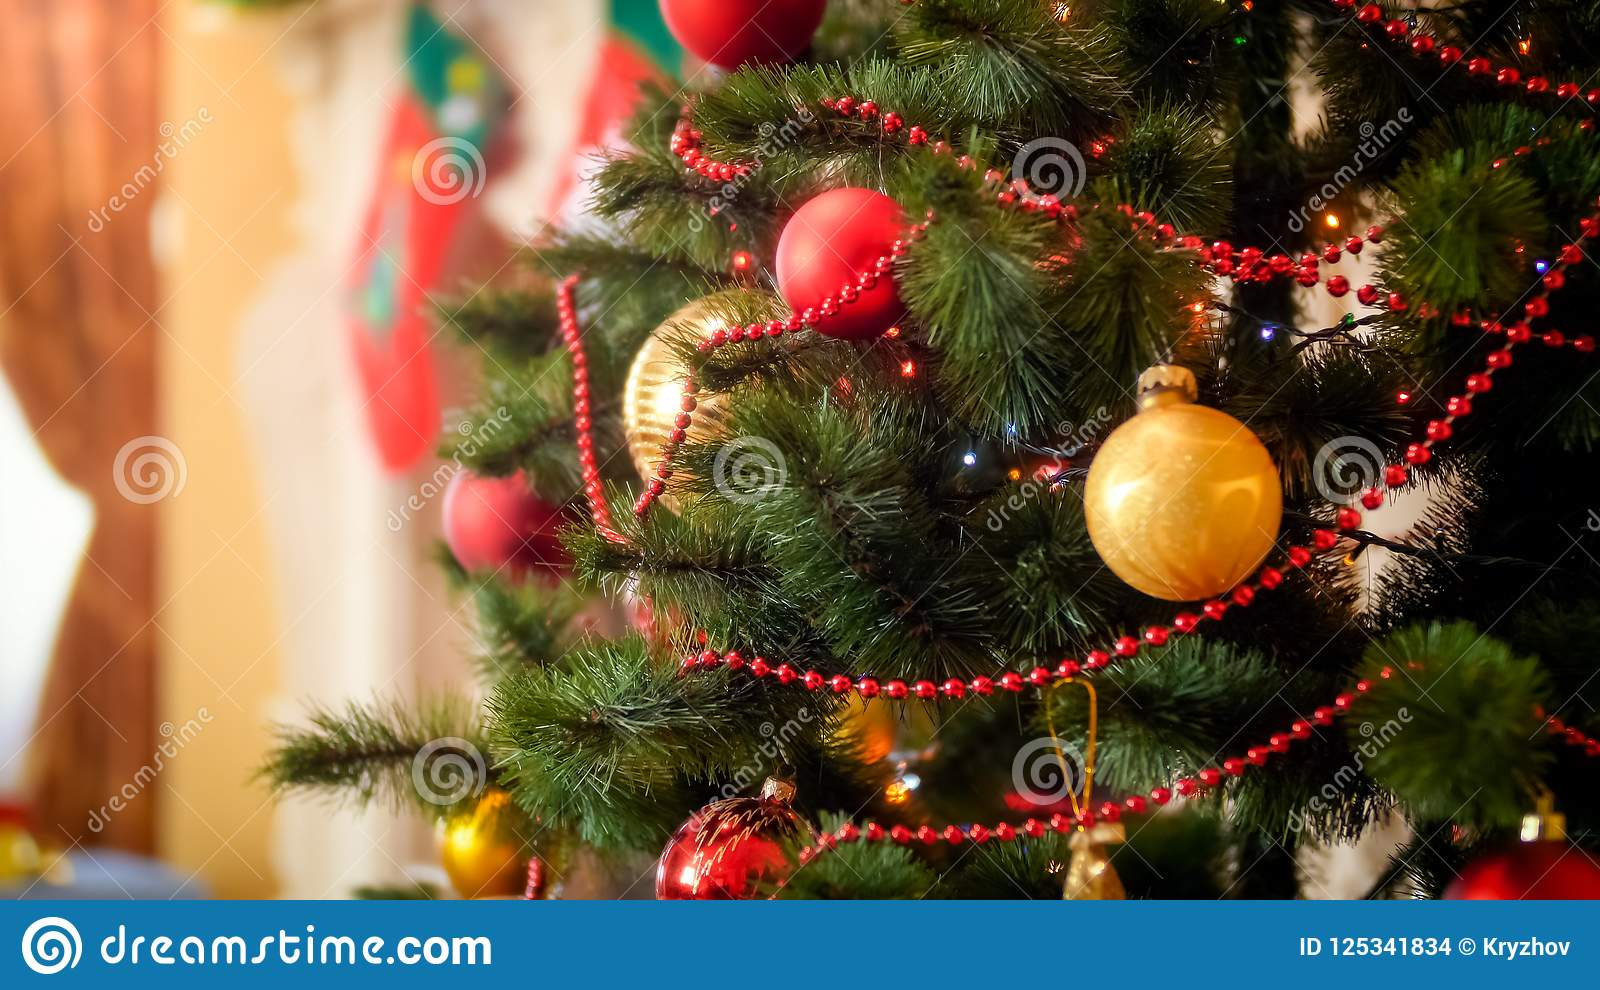 Closeup image of colorful lights glowing on adorned Christmas tree at house